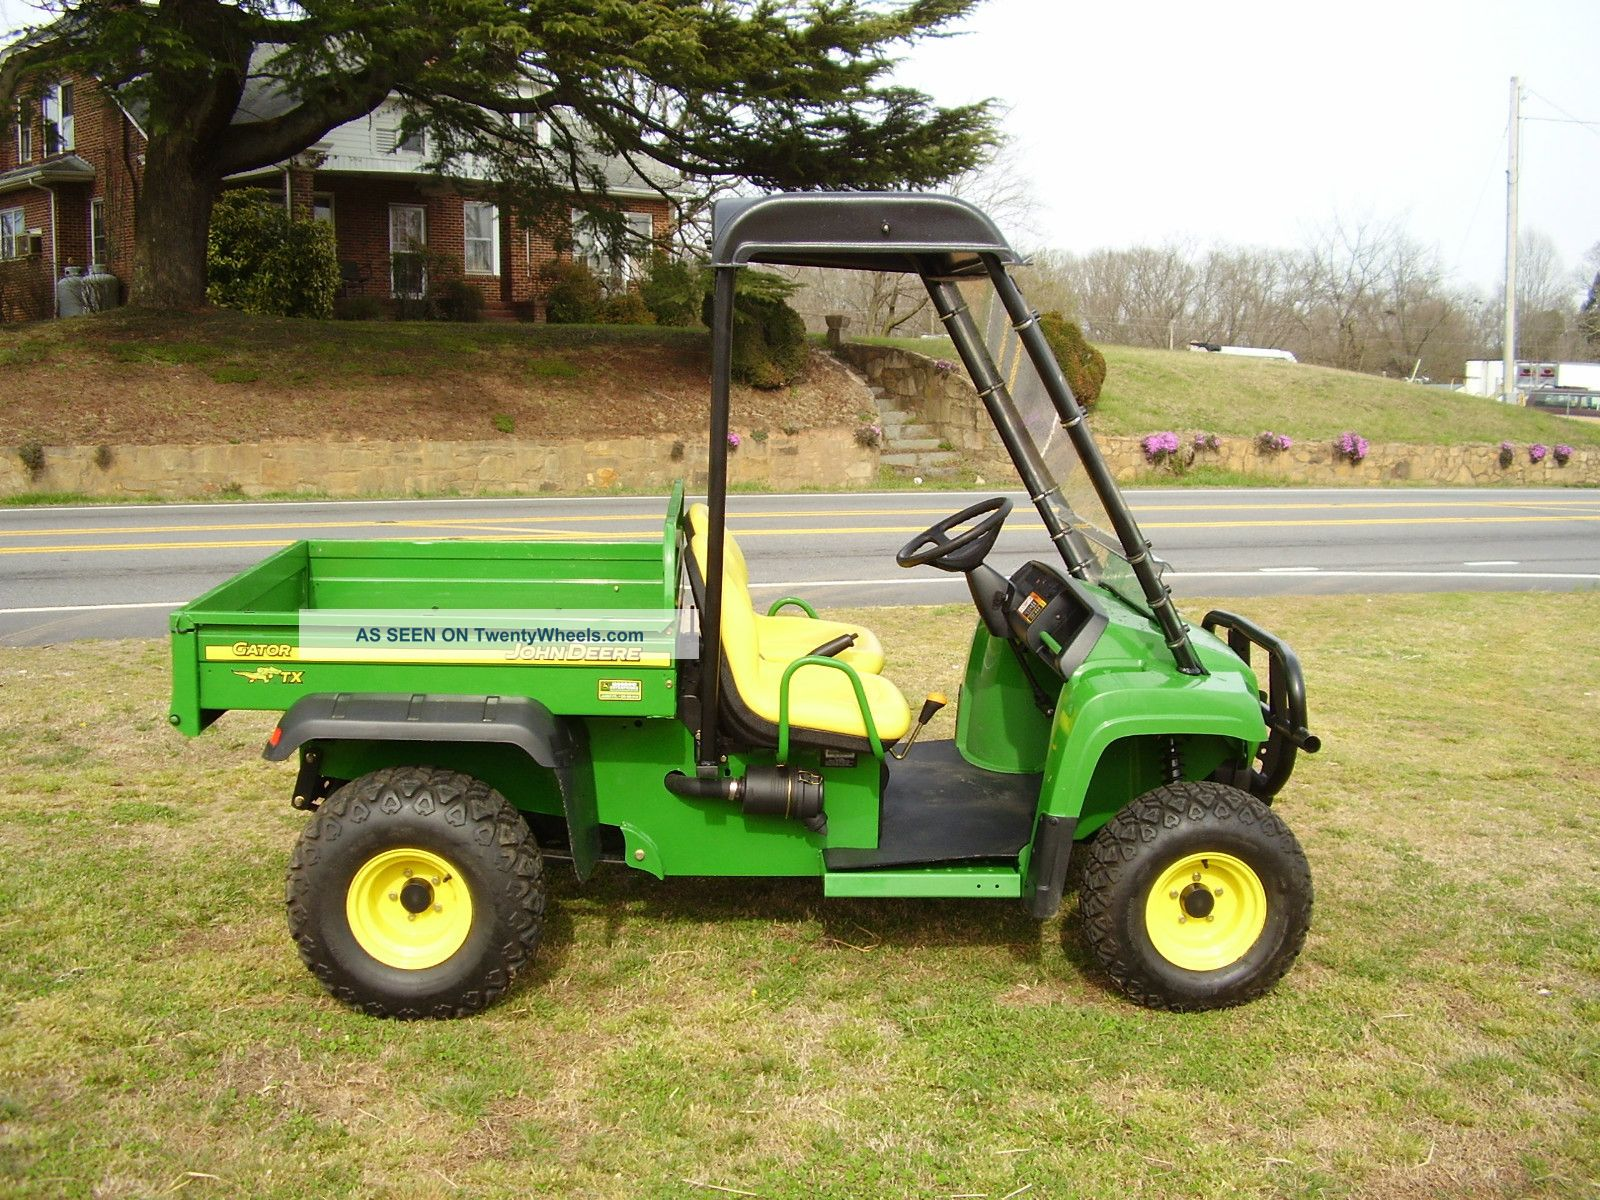 2007 John Deere Tx Gator Only 61 Hours Utility Vehicles photo